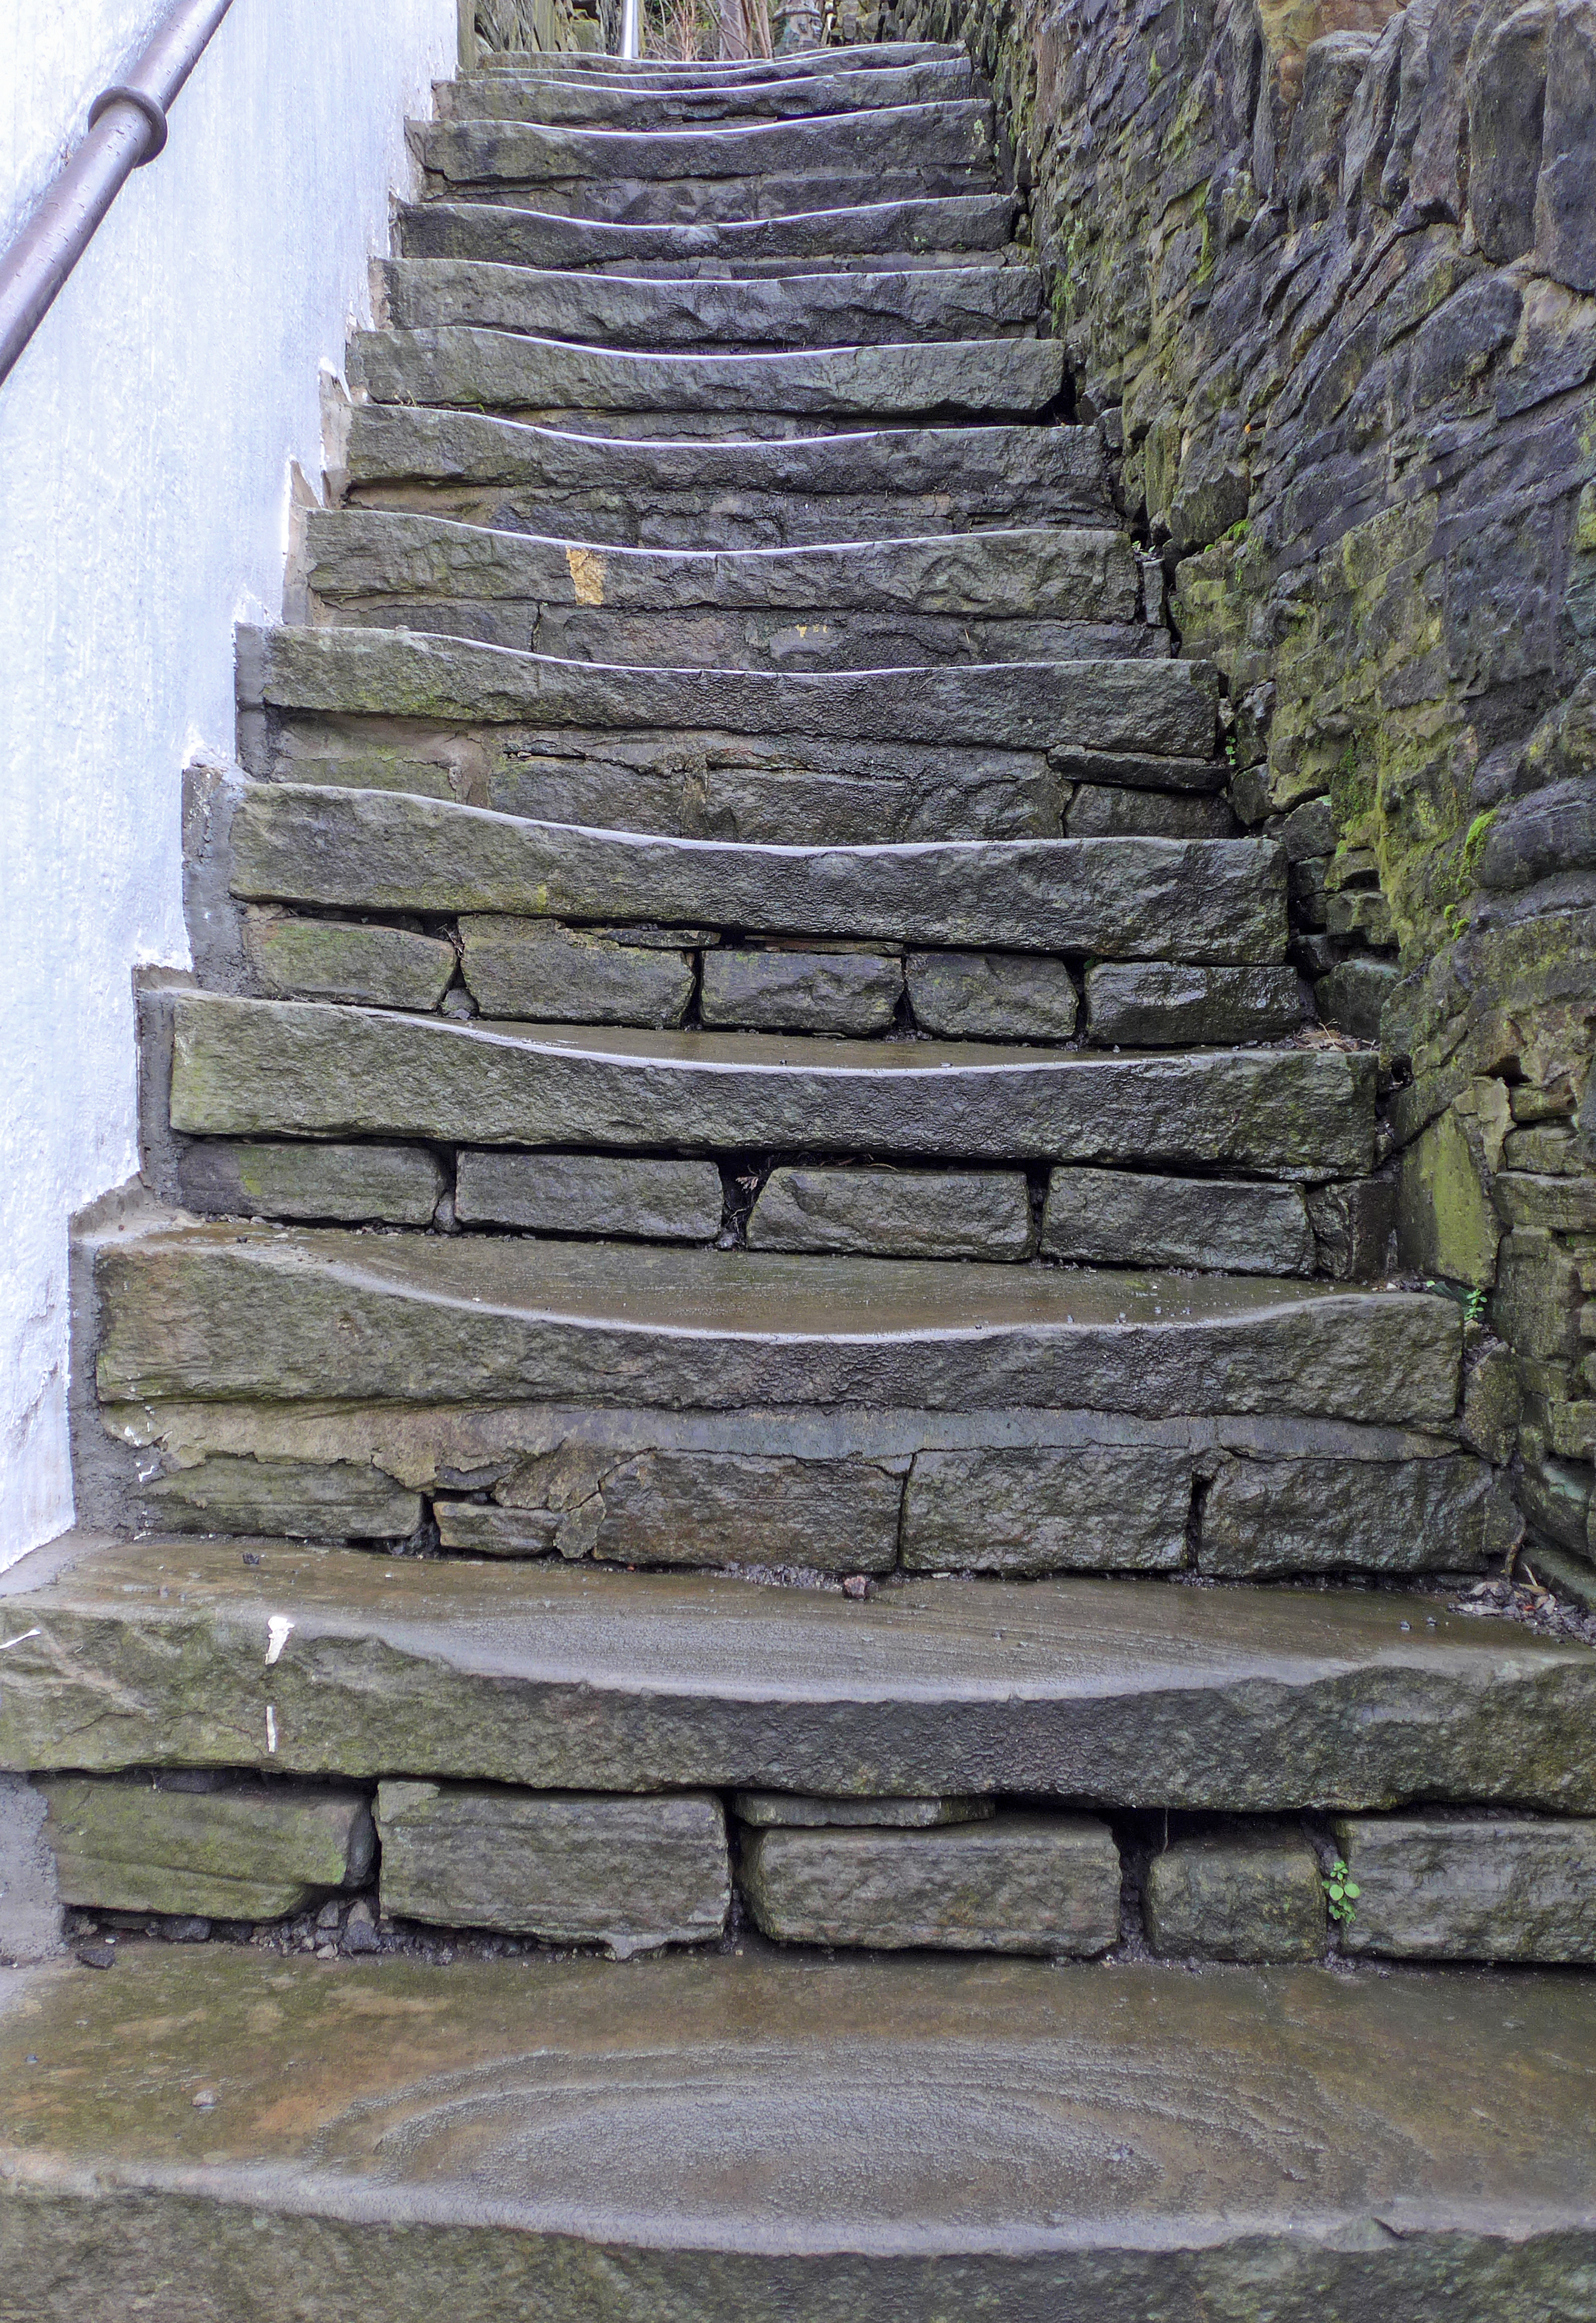 Stone steps worn away in the center under years of footsteps